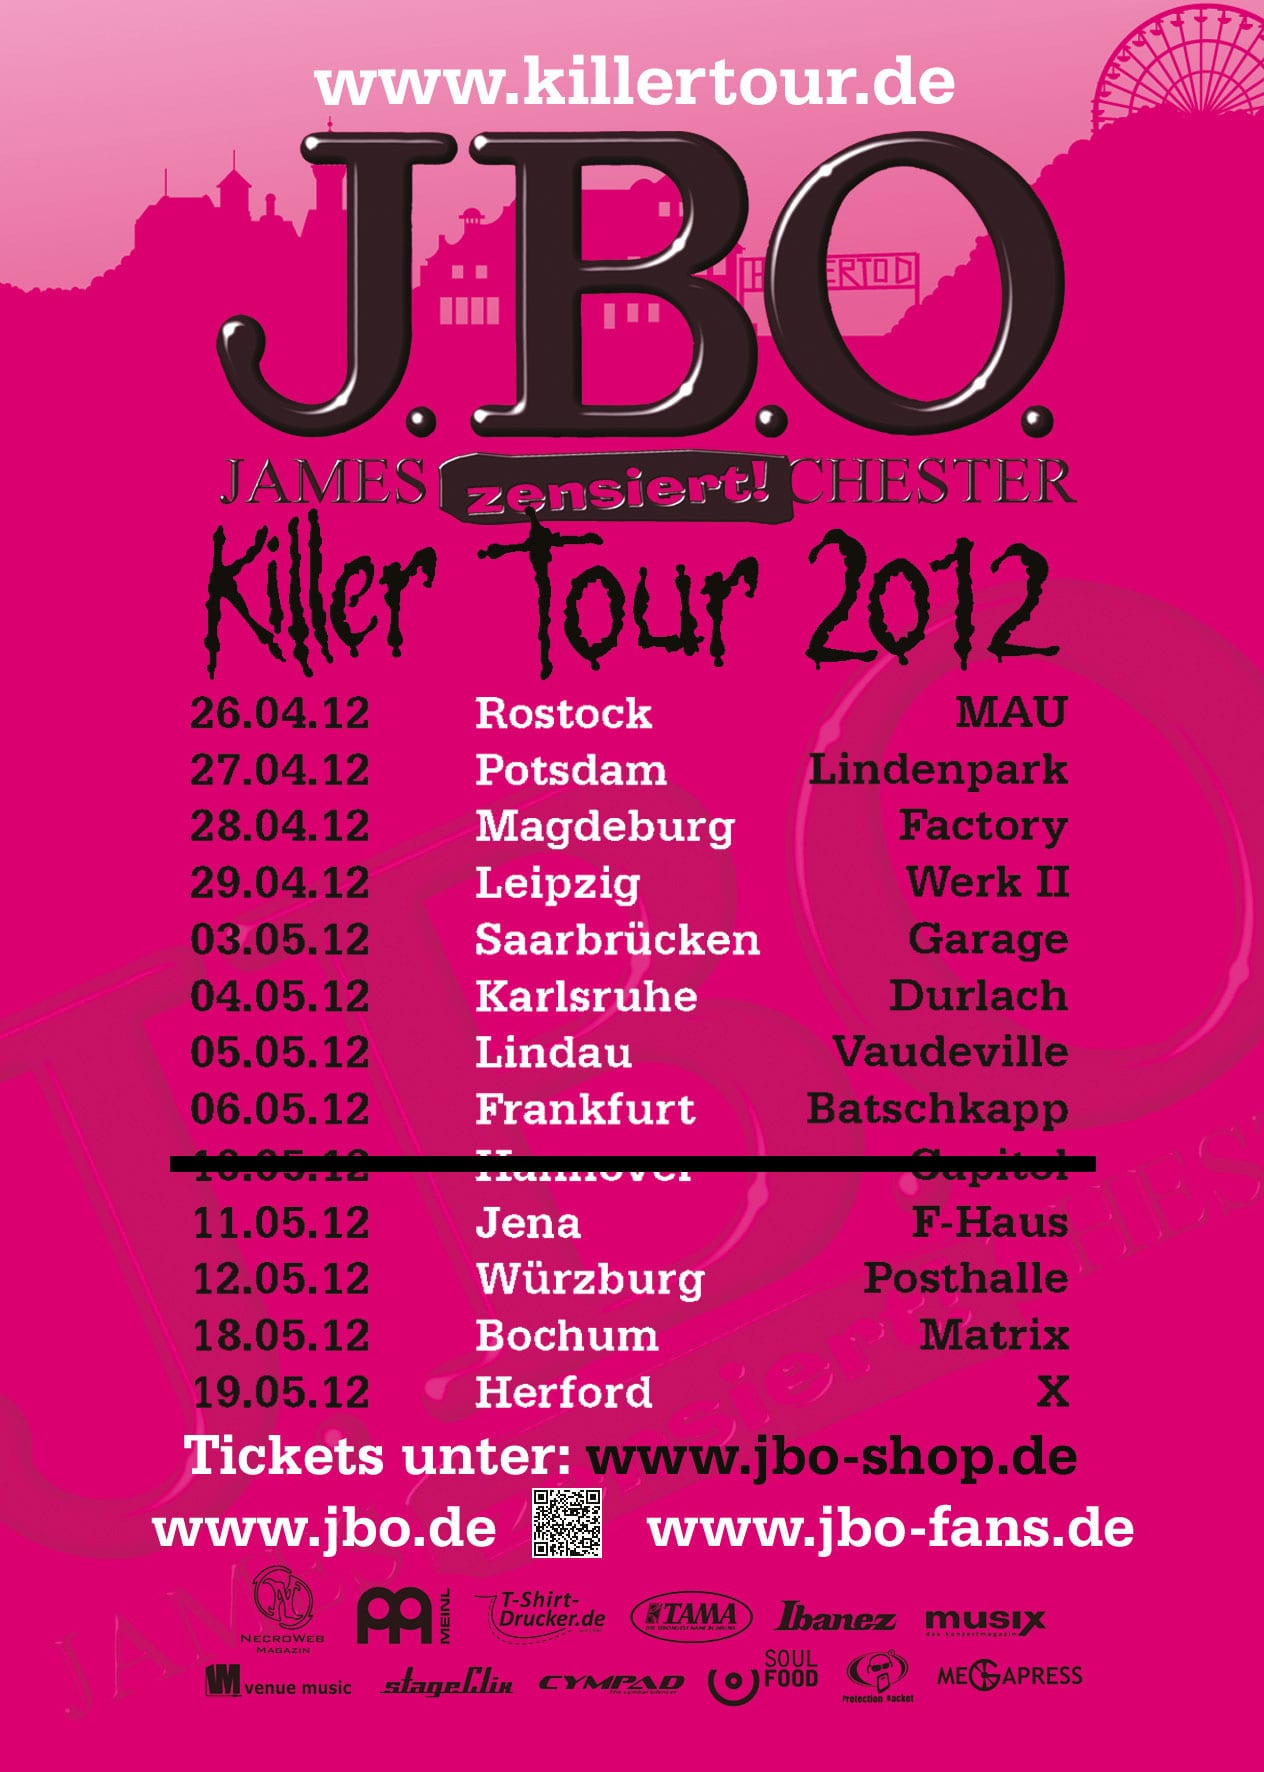 Flyer: J.B.O. Killer Tour 2012